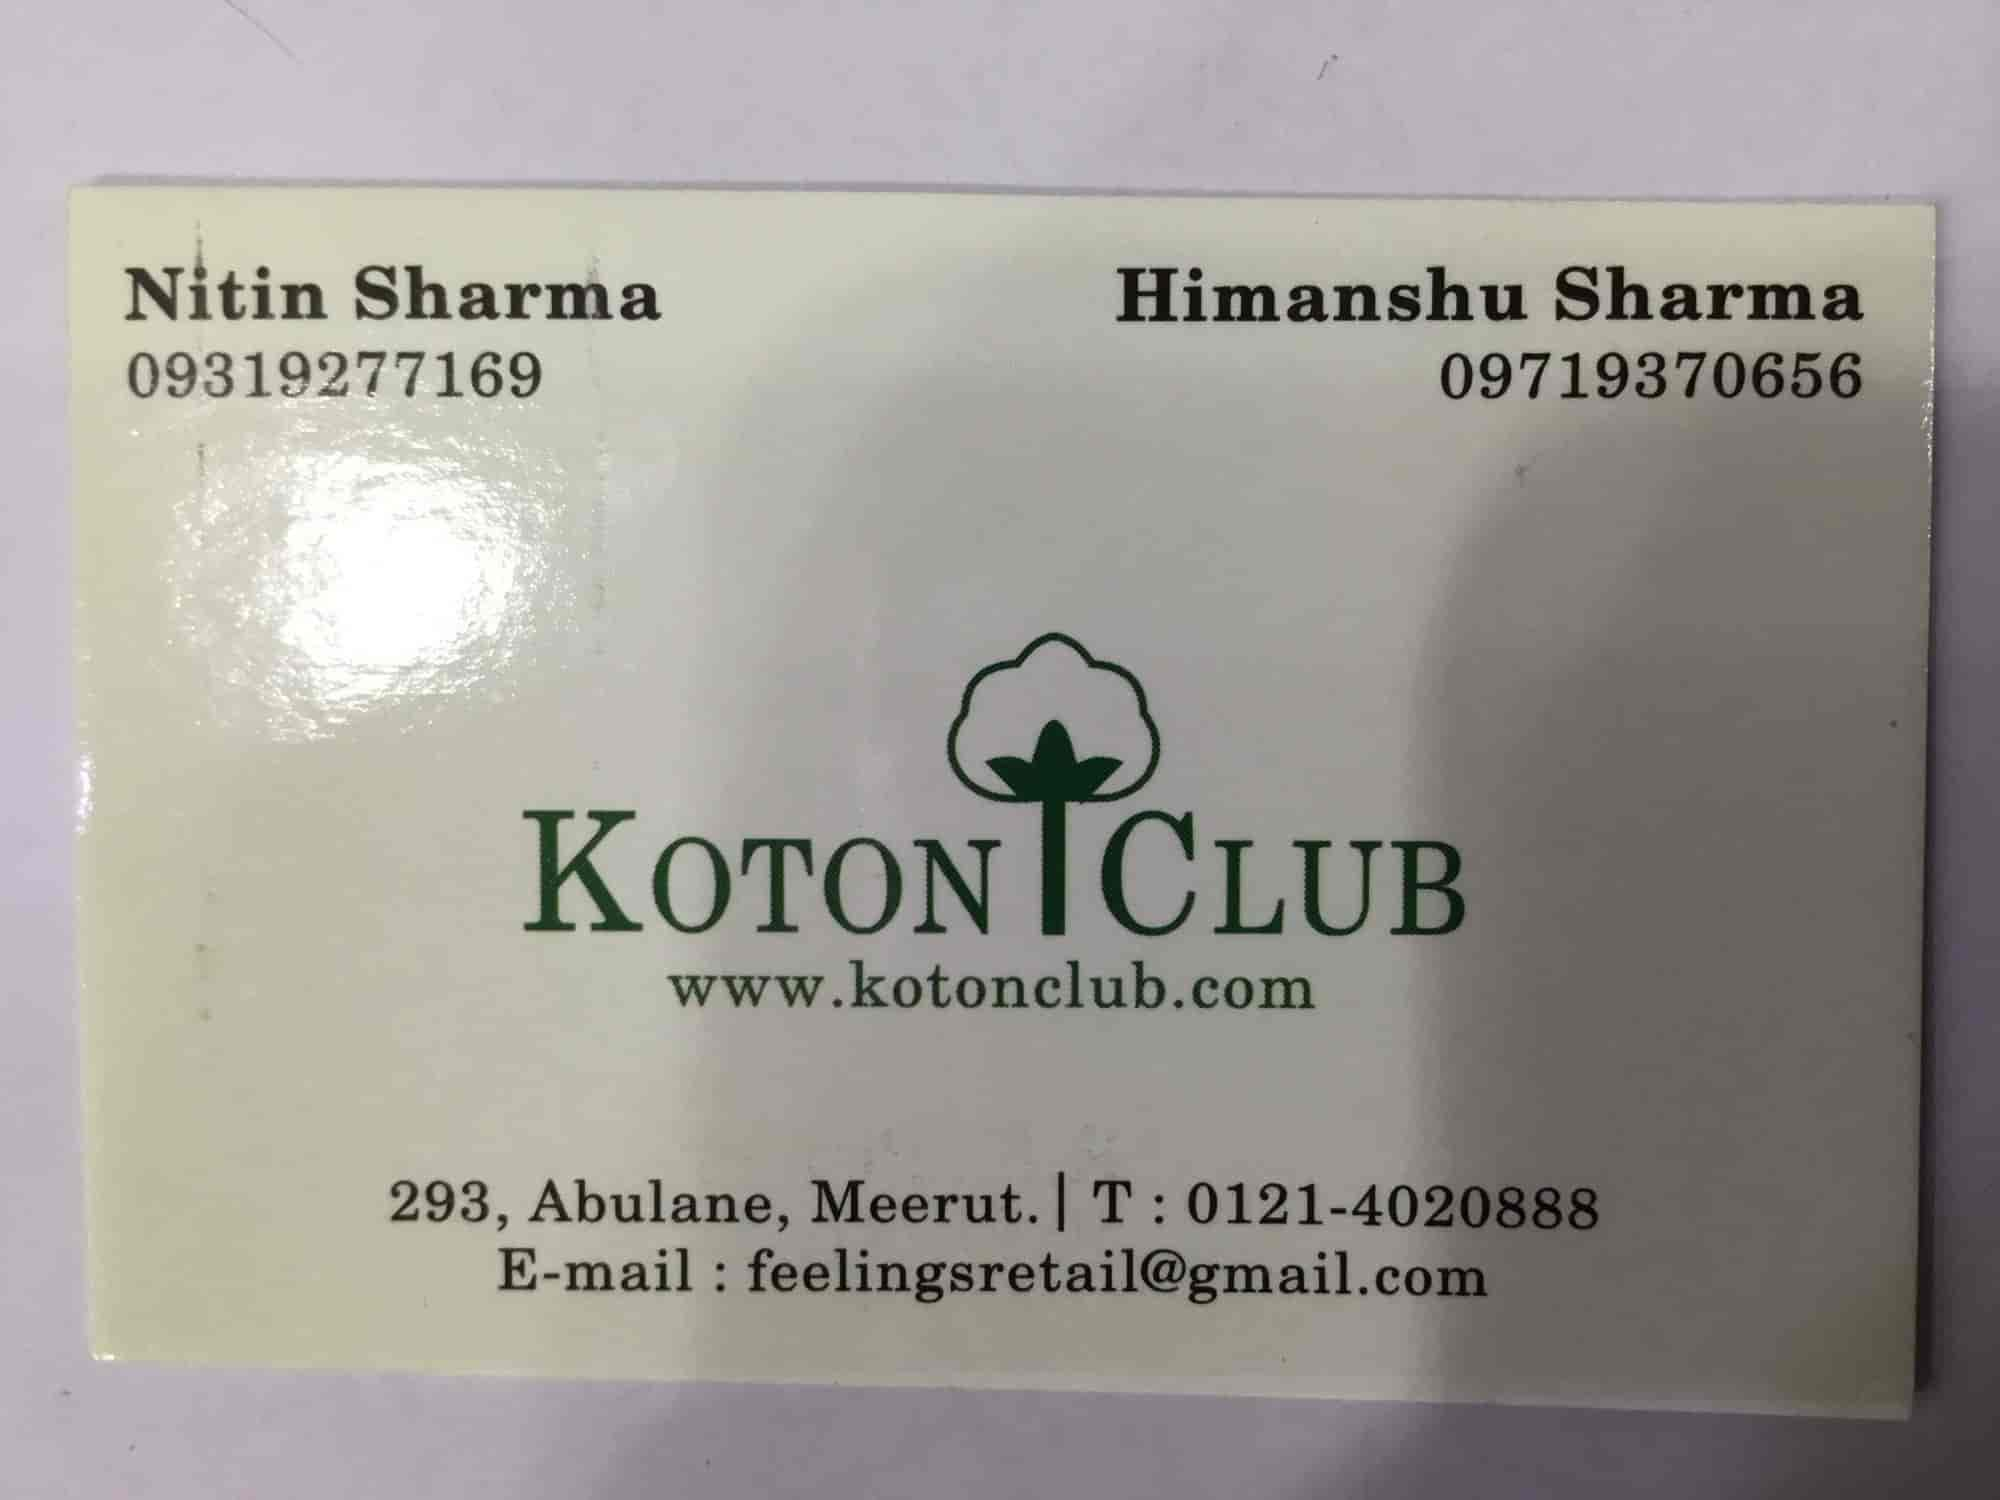 Koton Club Photos Abulane Meerut Pictures Images Gallery Justdial